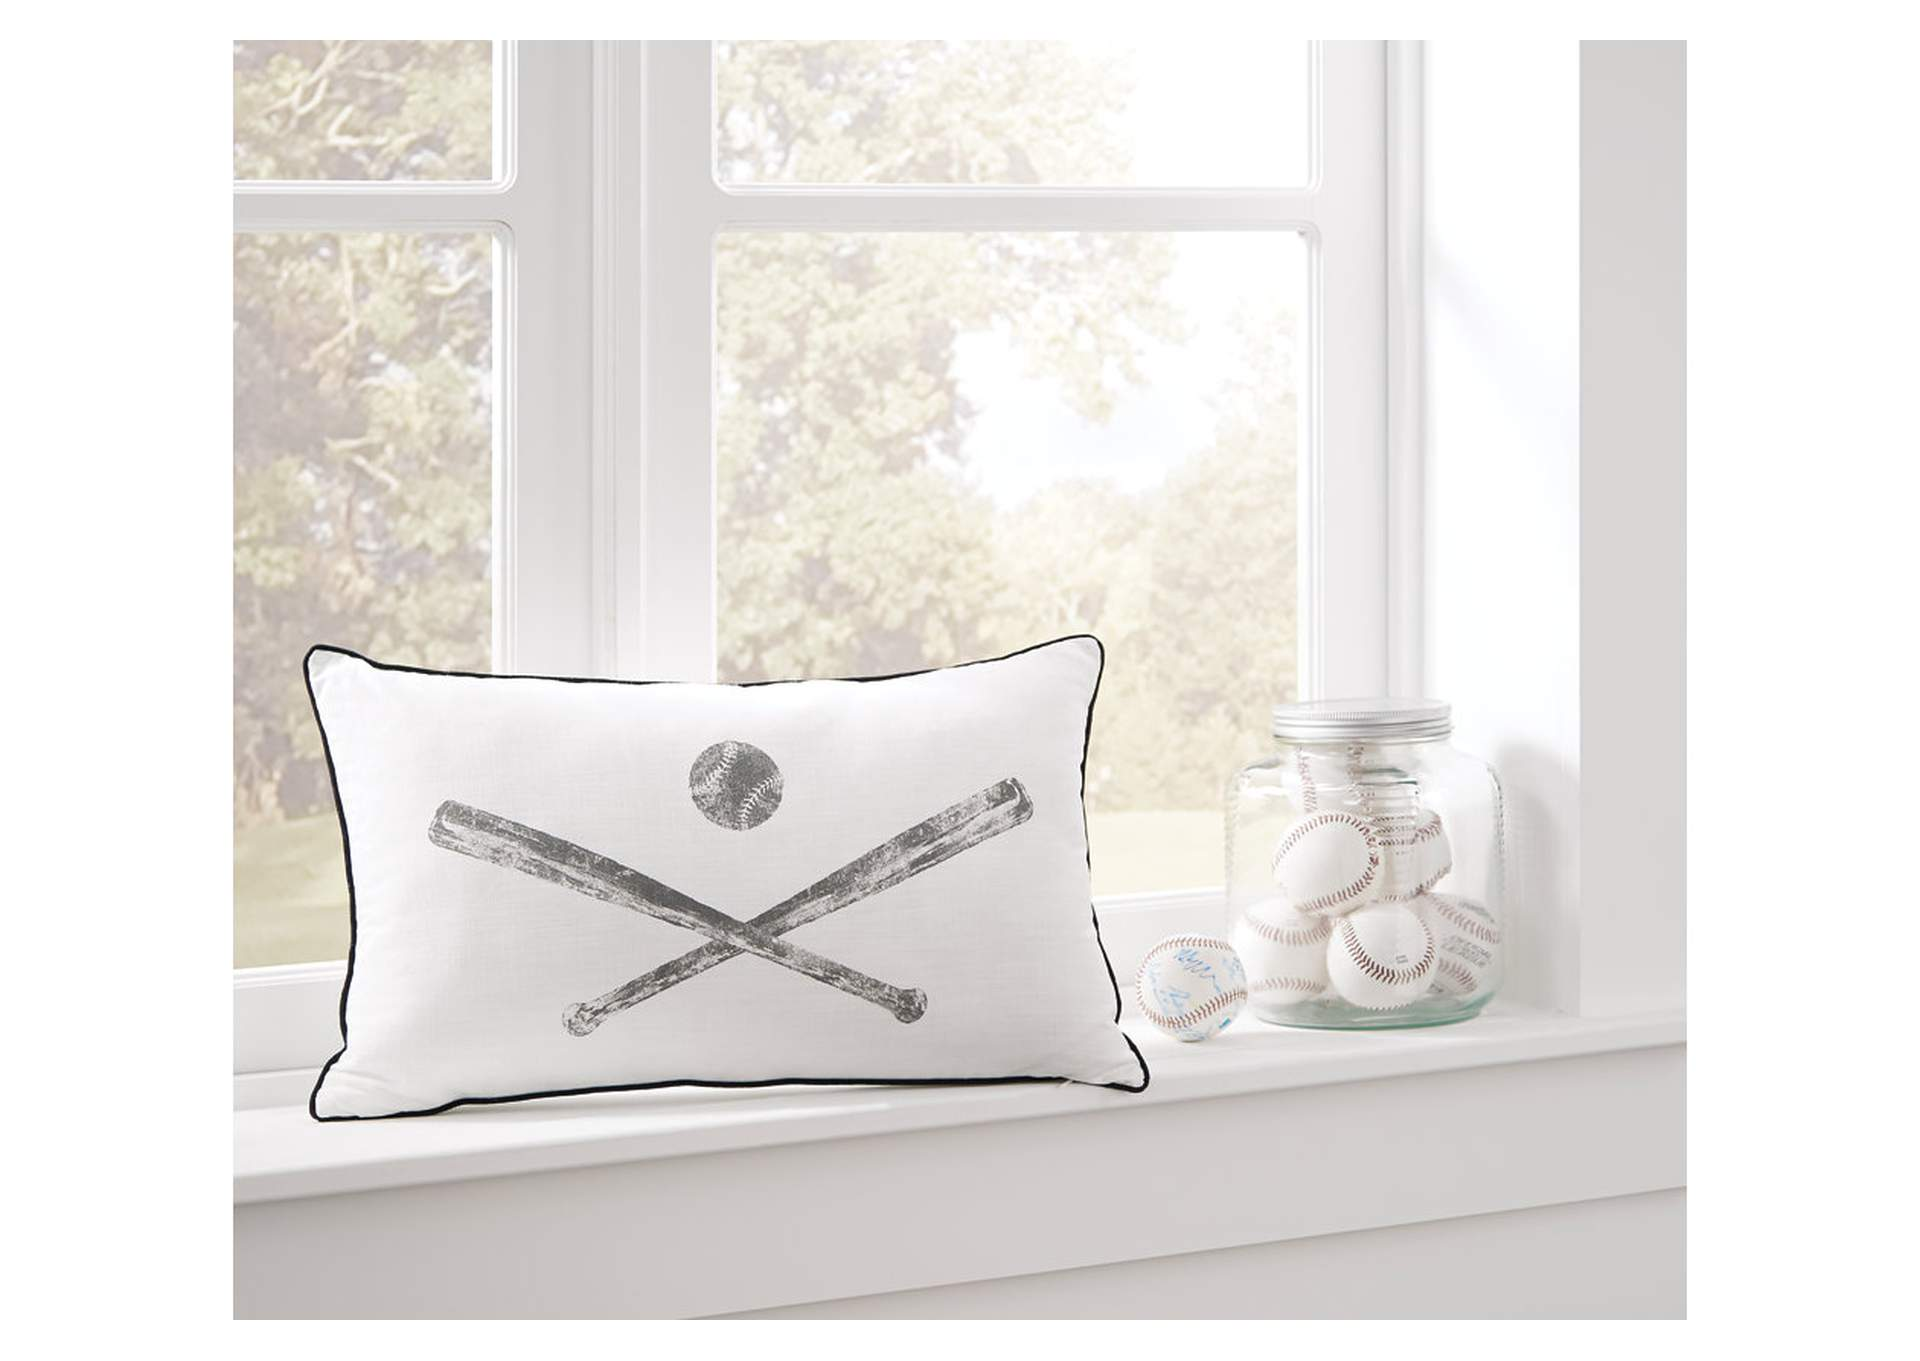 Waman Baseball Design Pillow,Direct To Consumer Express